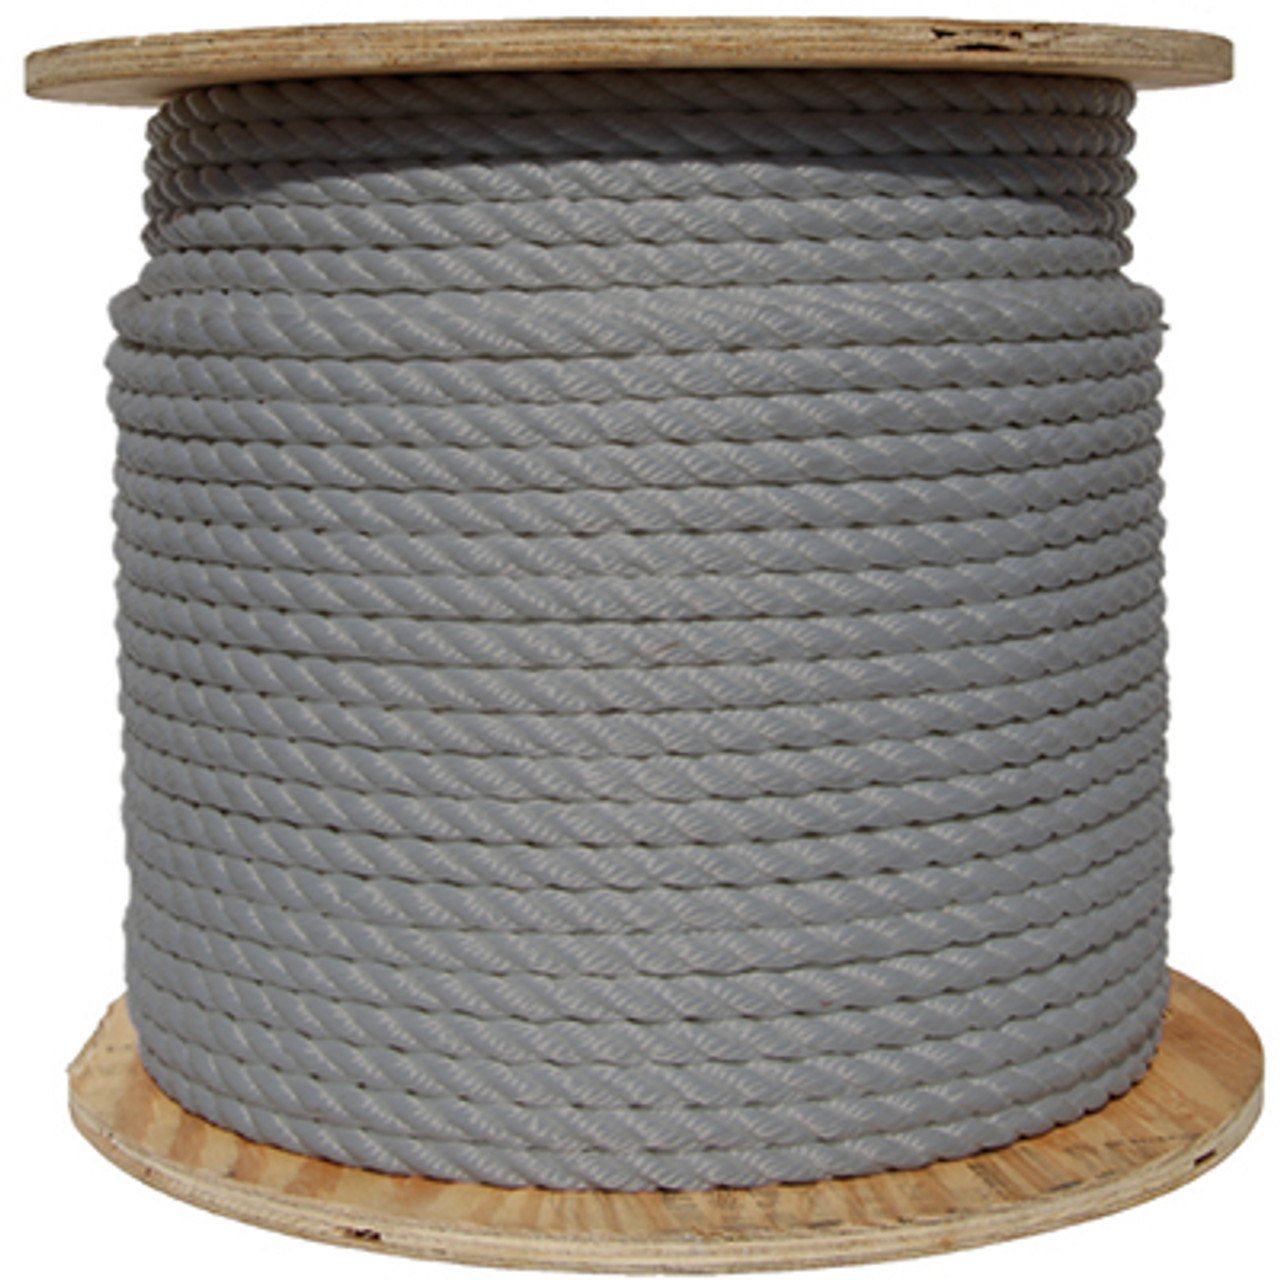 Spool of Gray/Silver Rope